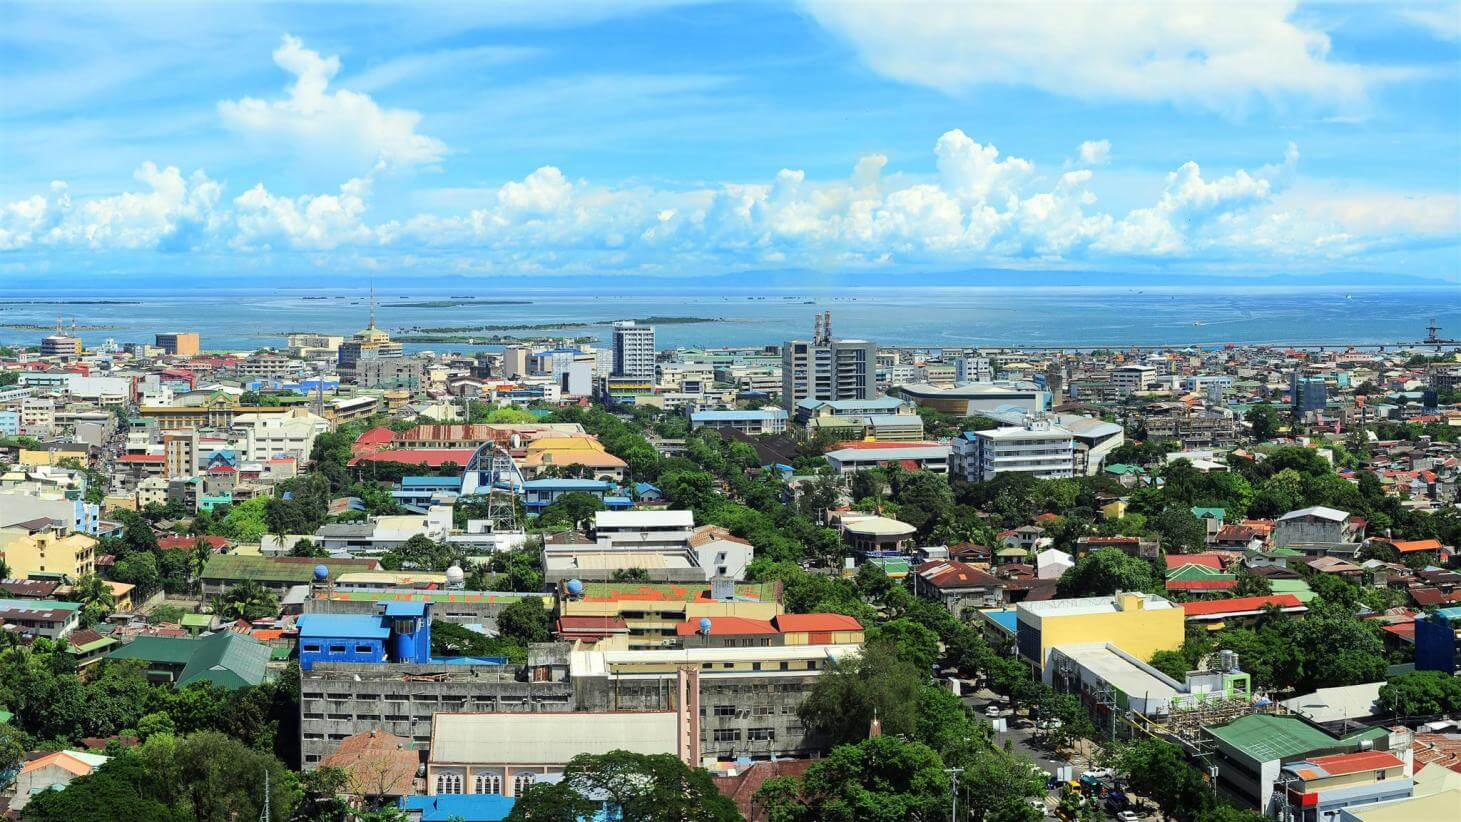 50 Cebu City workplaces monitored as COVID-19 cases rise